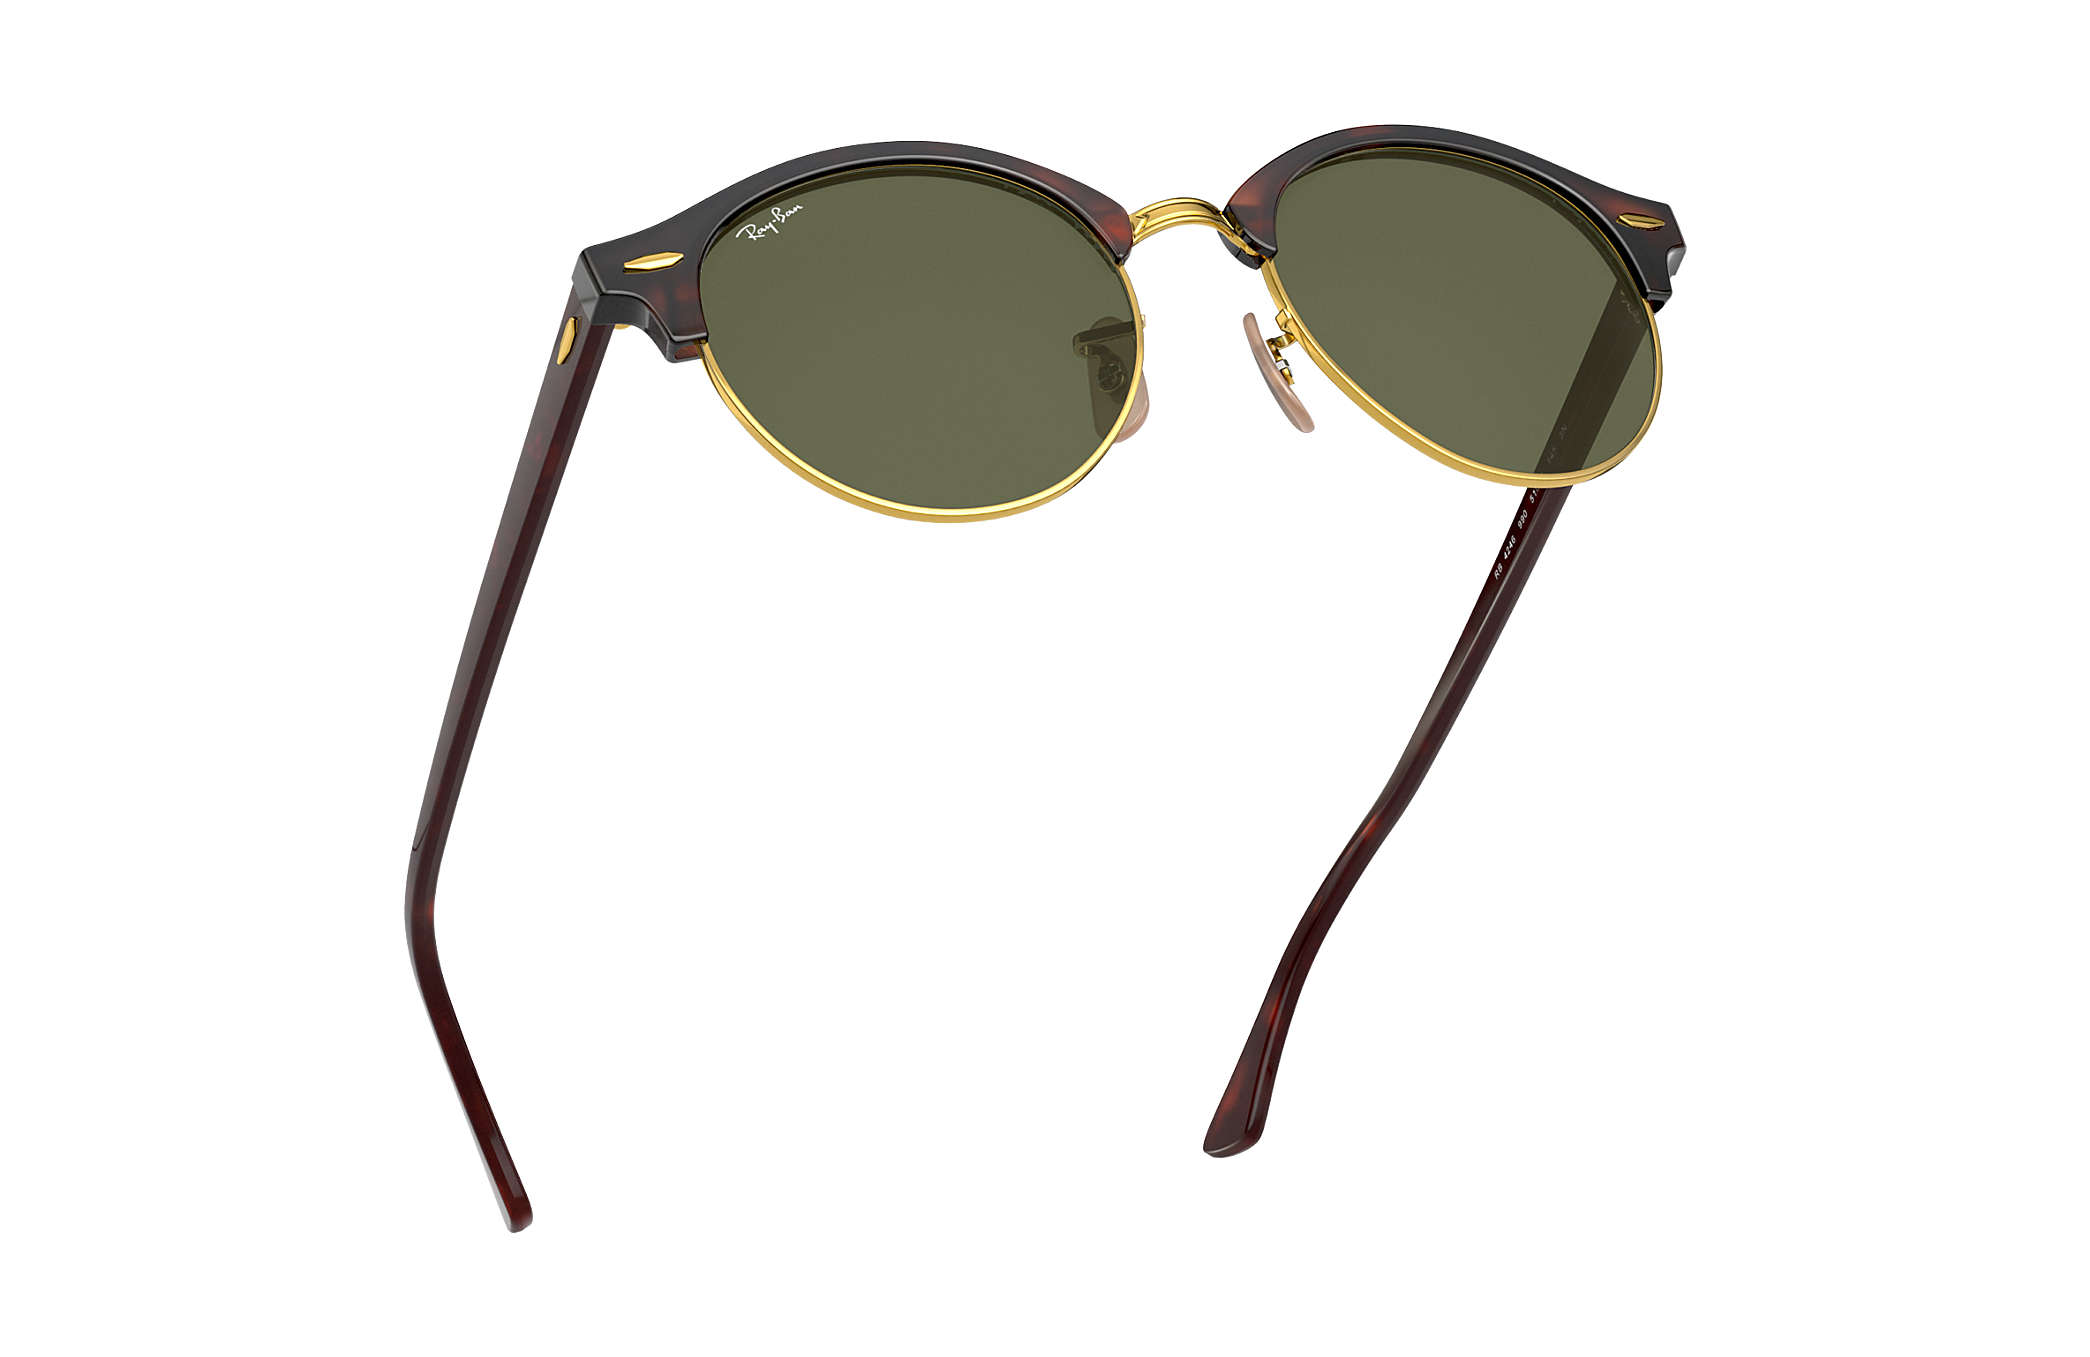 79c7fb42b3 Ray-Ban Clubround Classic RB4246 Tortoise - Acetate - Green Lenses ...